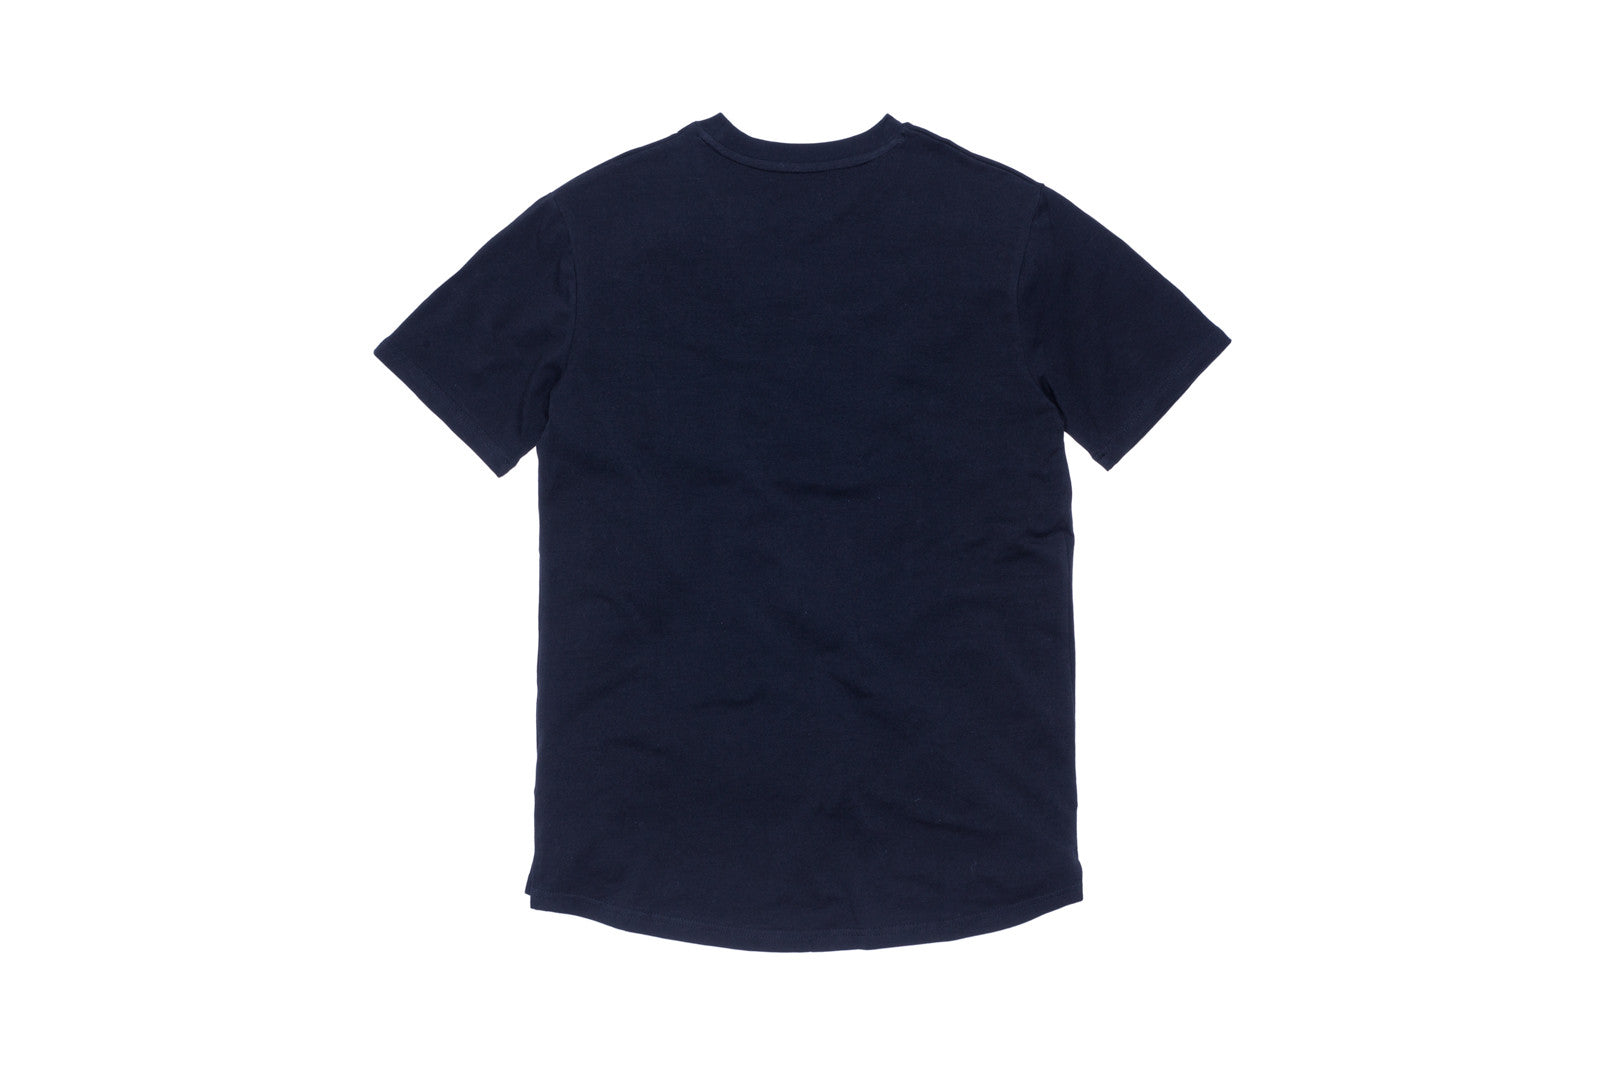 KITH Us Pocket Tee - Navy / White